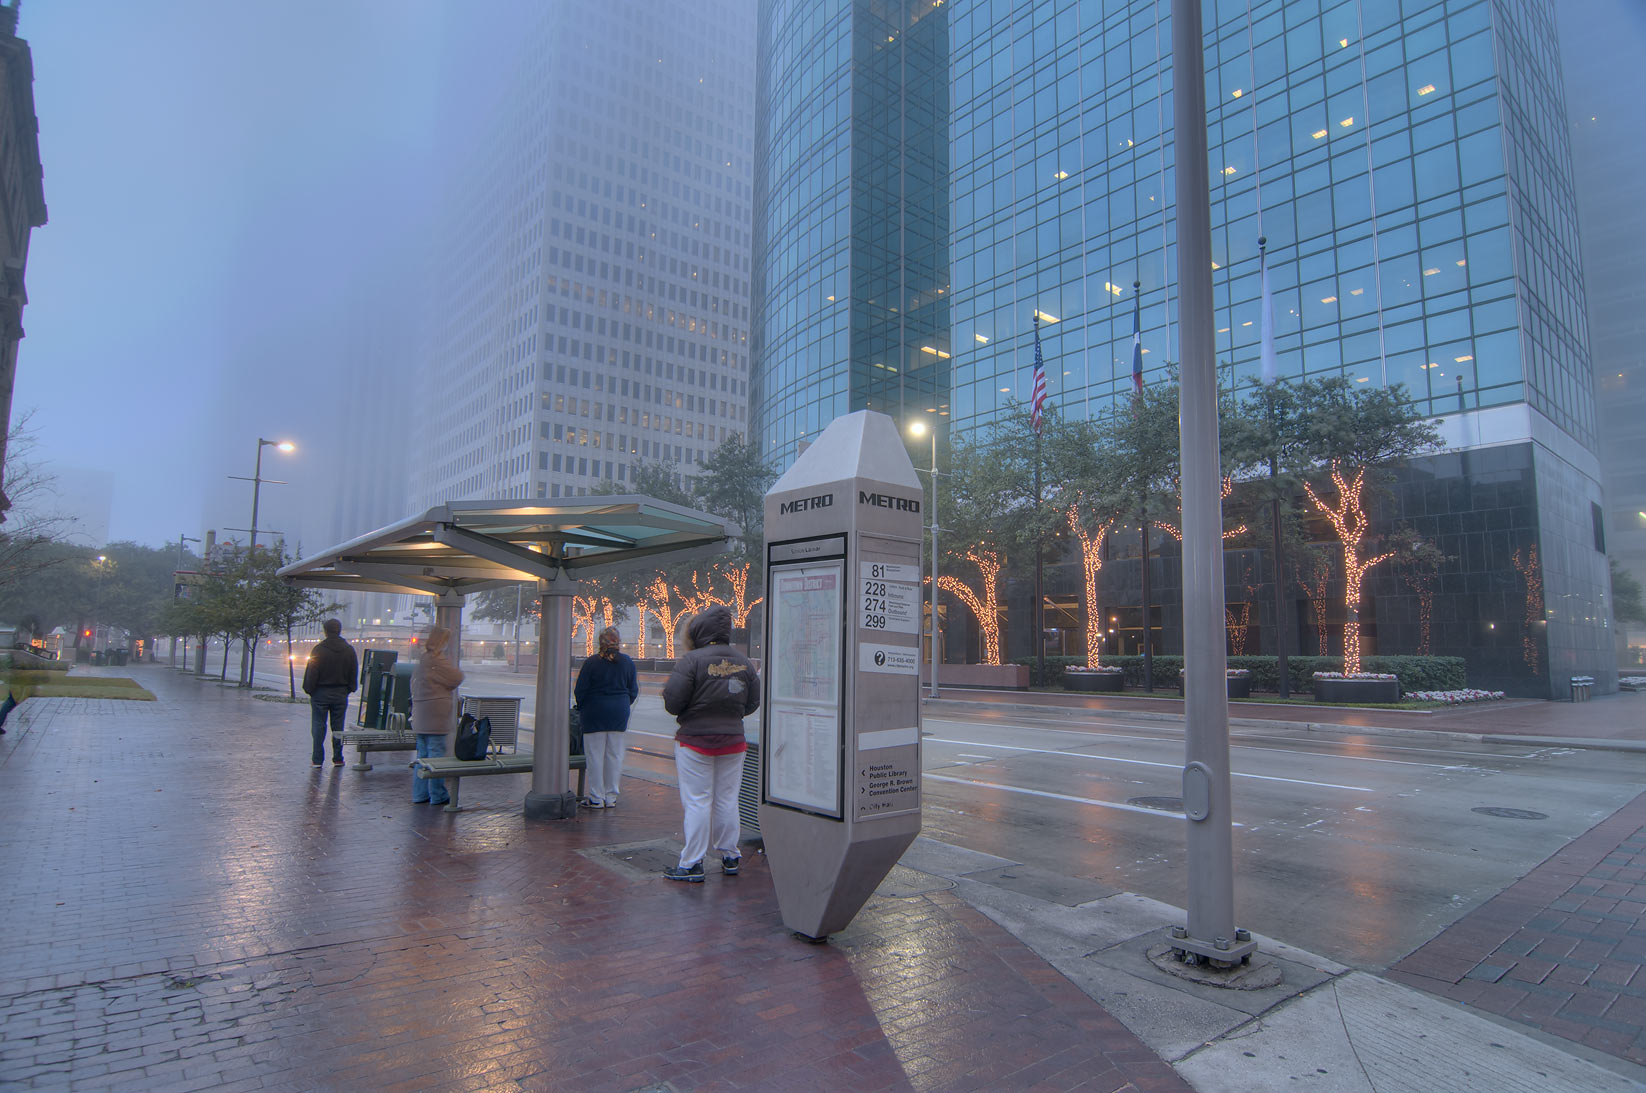 Passengers at bus stop in downtown in fog. Houston, Texas